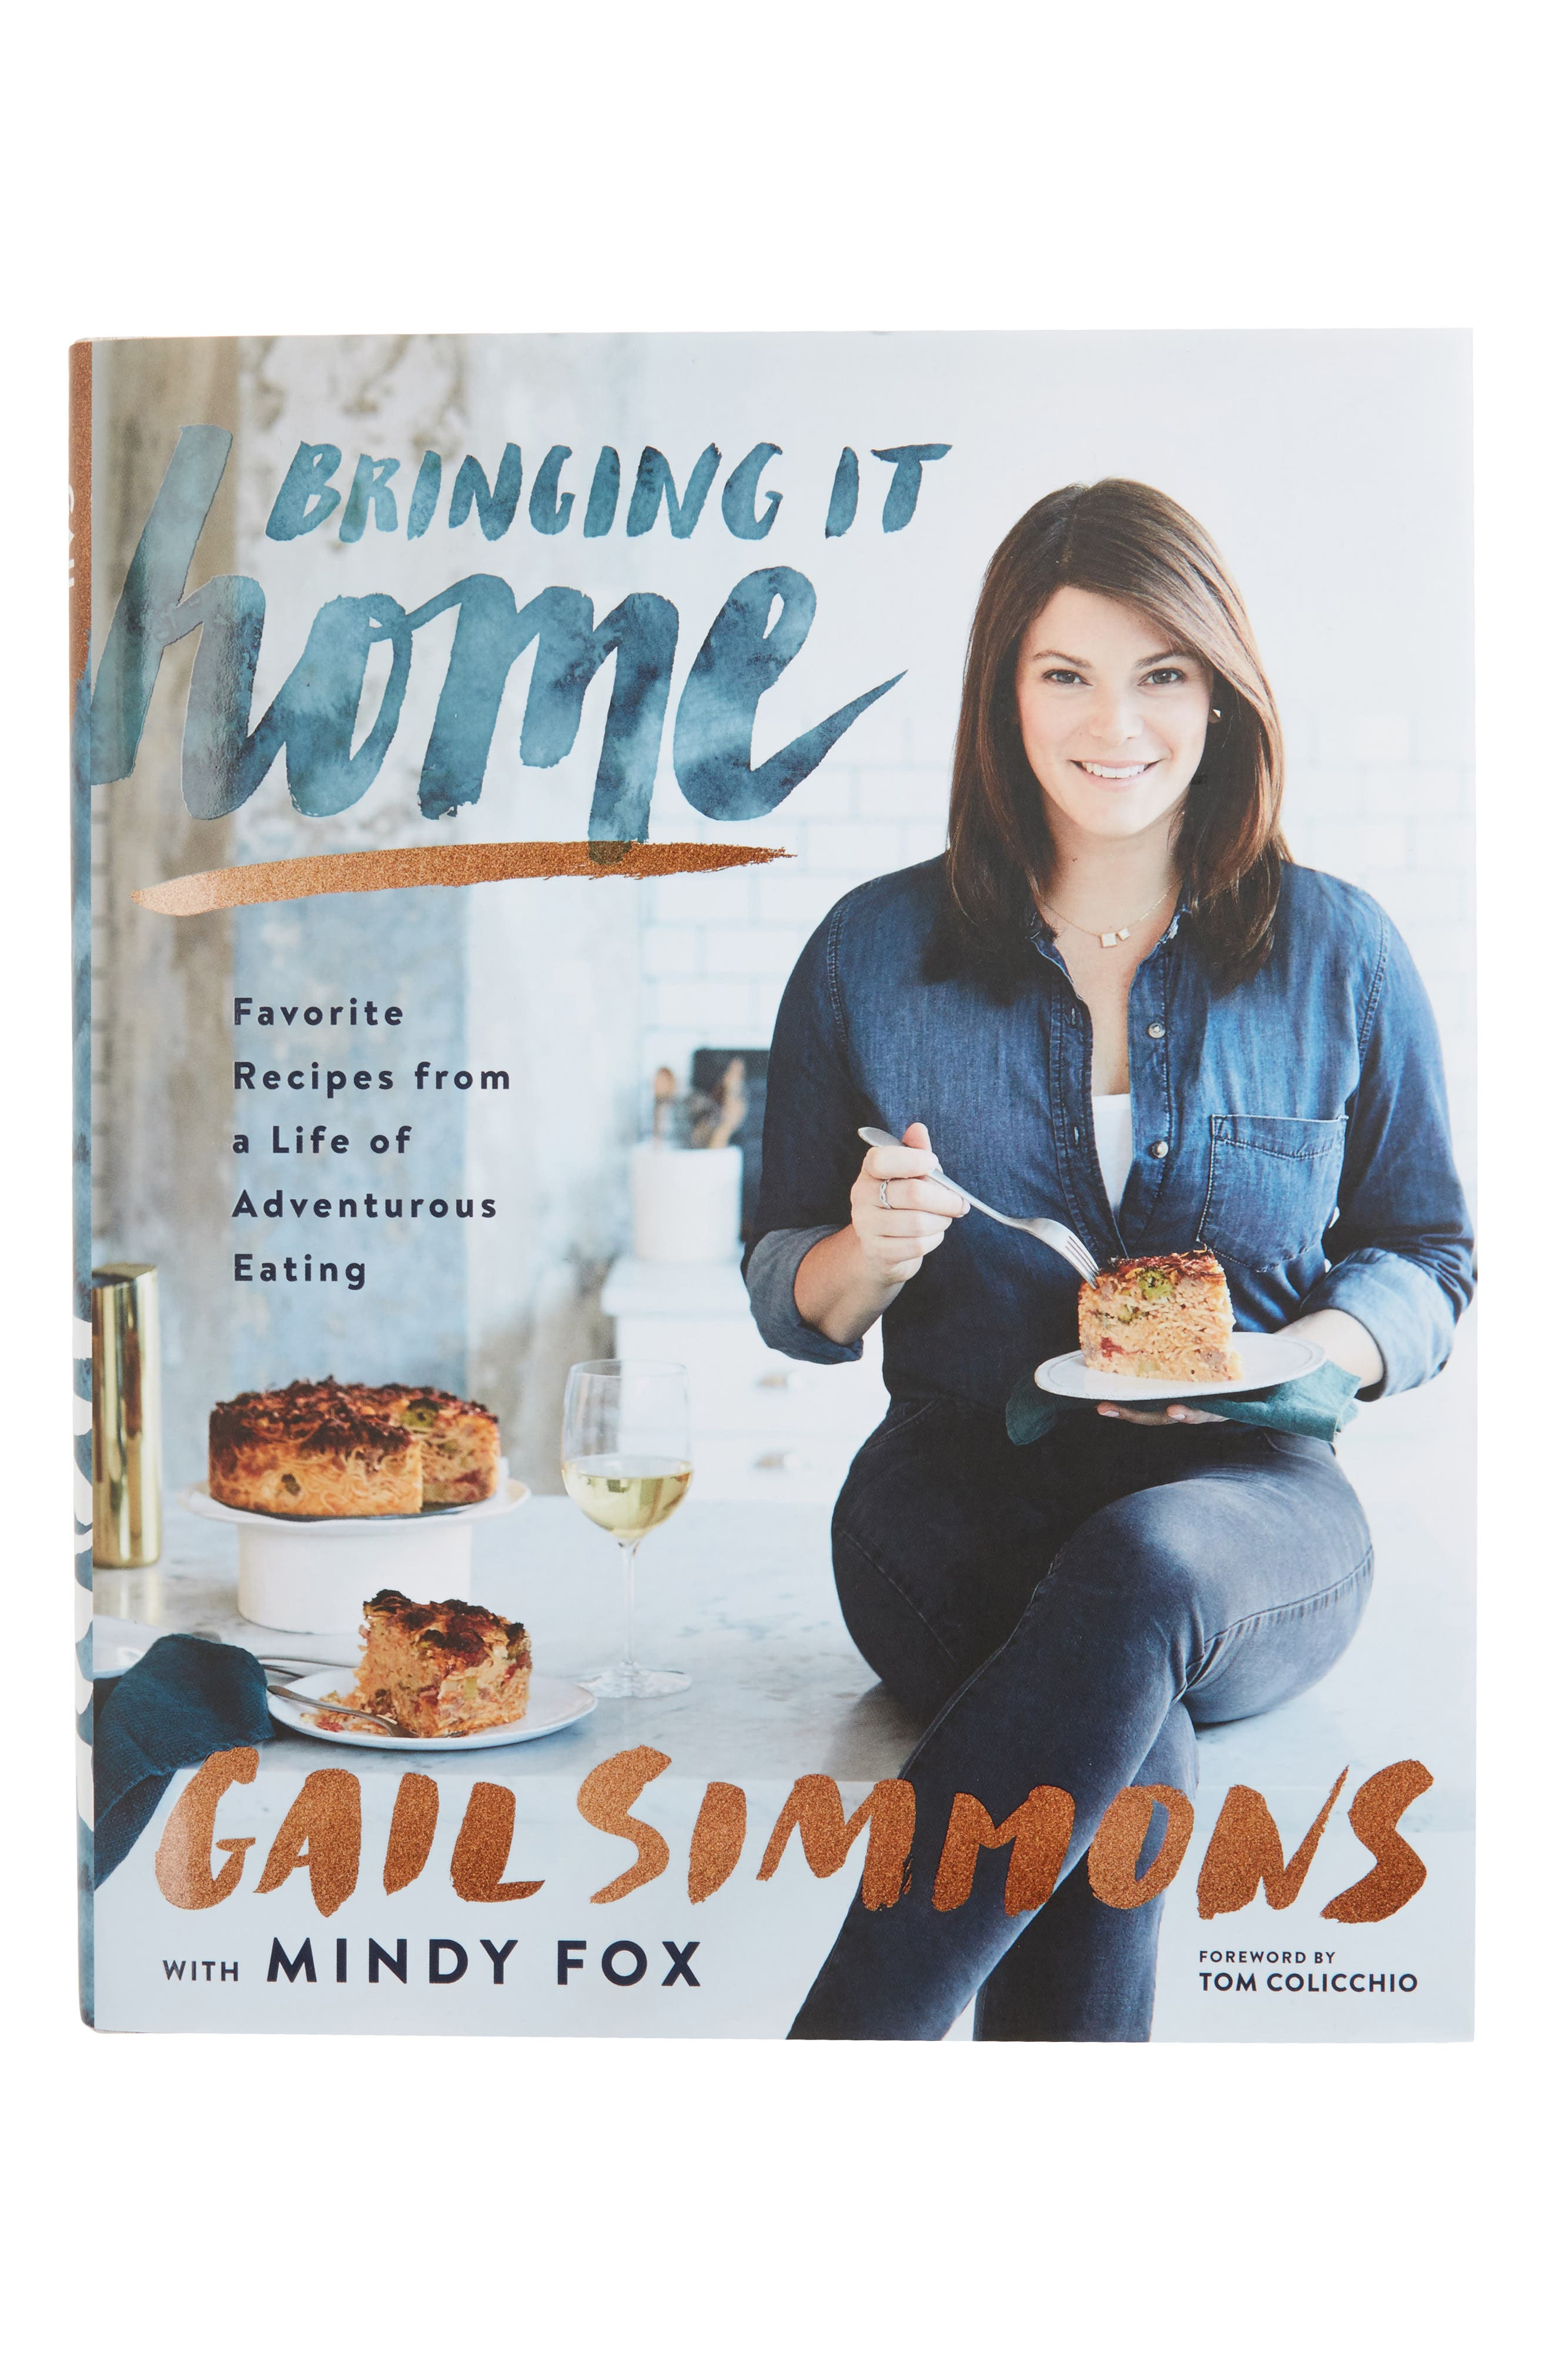 Bringing it Home: Favorite Recipes from a Life of Adventurous Eating